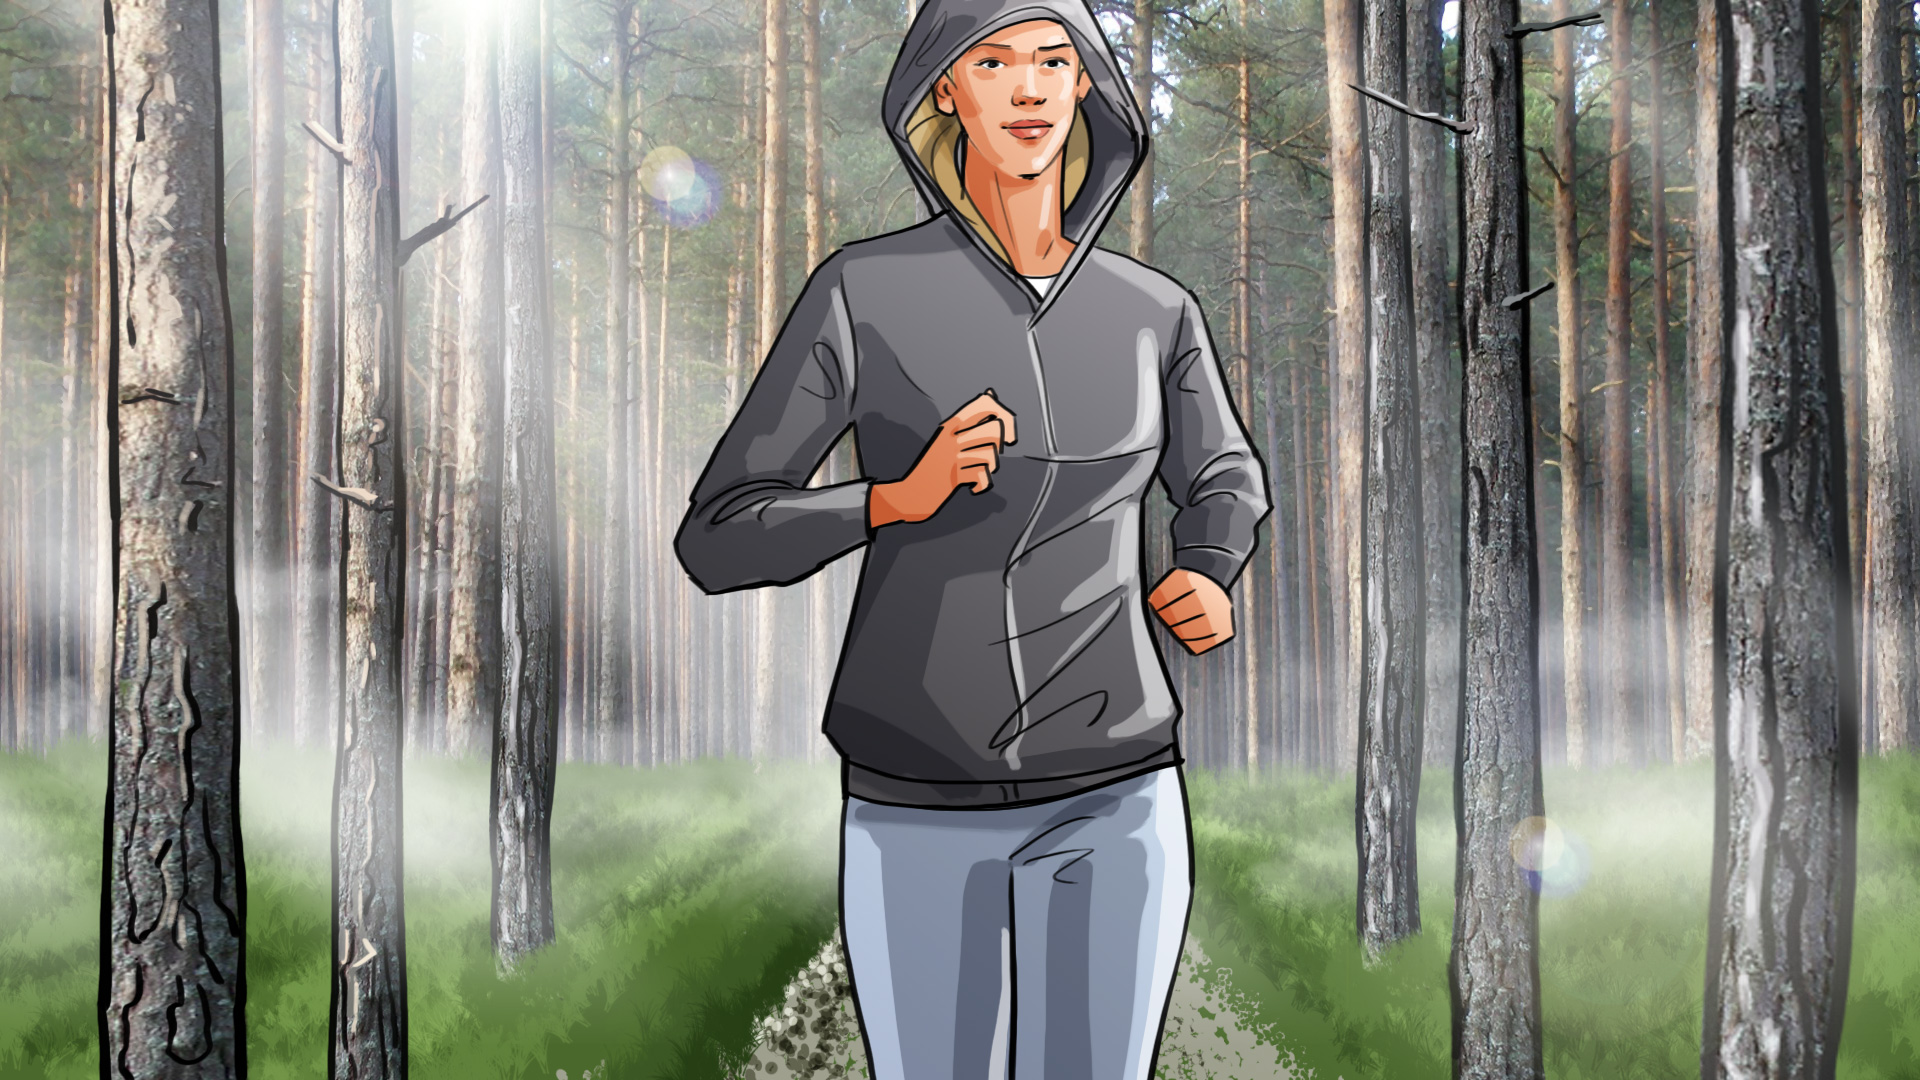 women running forrest health illustration